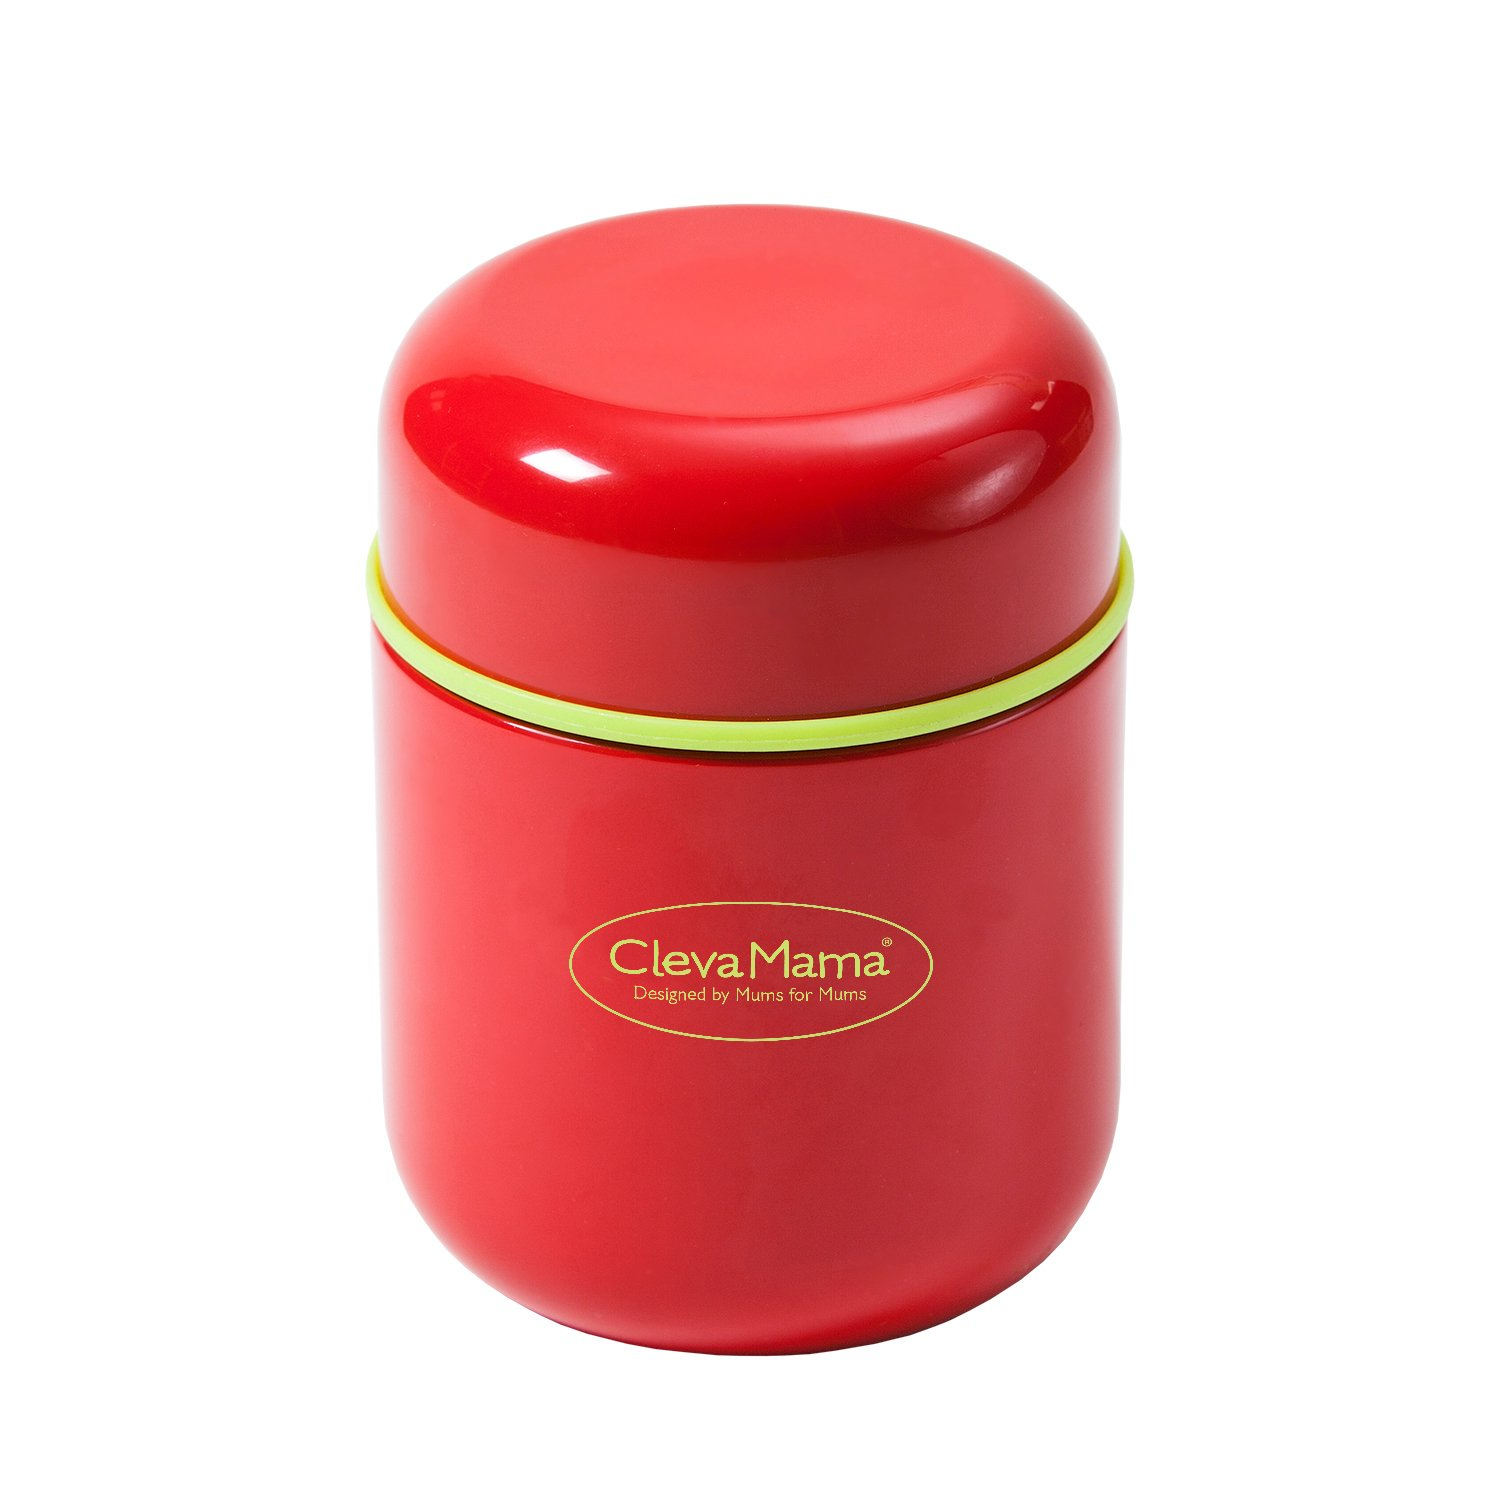 Upto 25% off on International Baby Products By Amazon | Clevamama Thermal Food and Drink Flask (Red) @ Rs.949